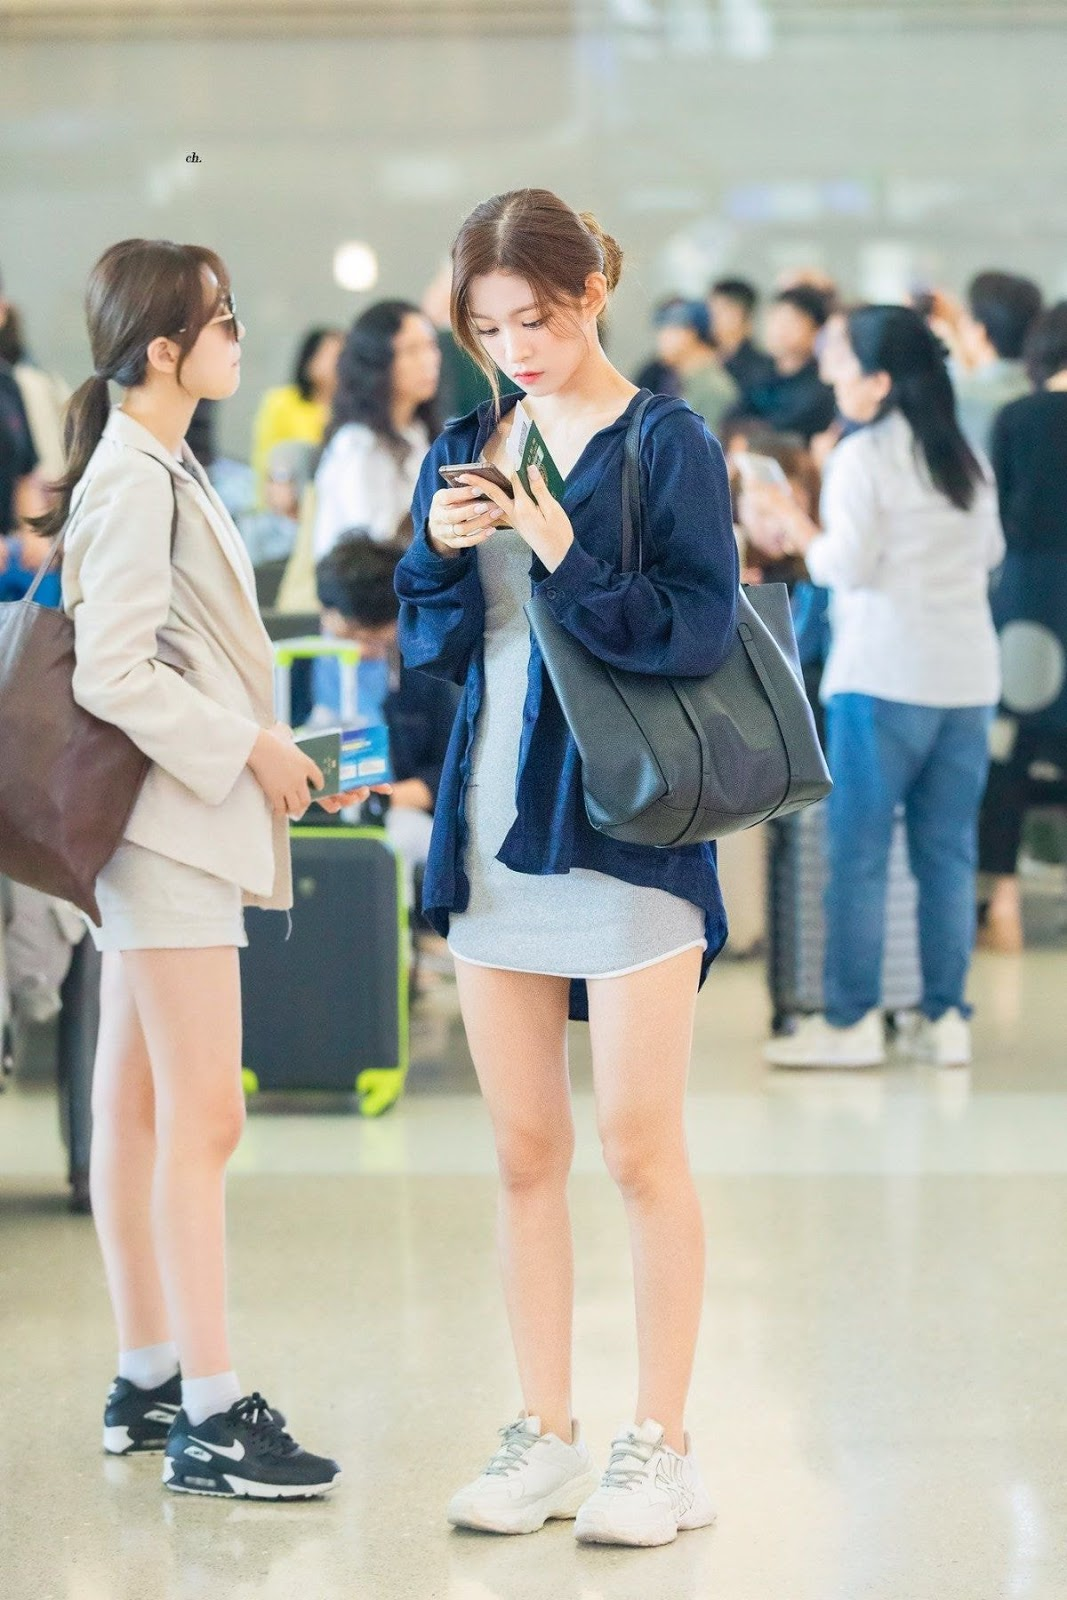 tallest - chaeyoung